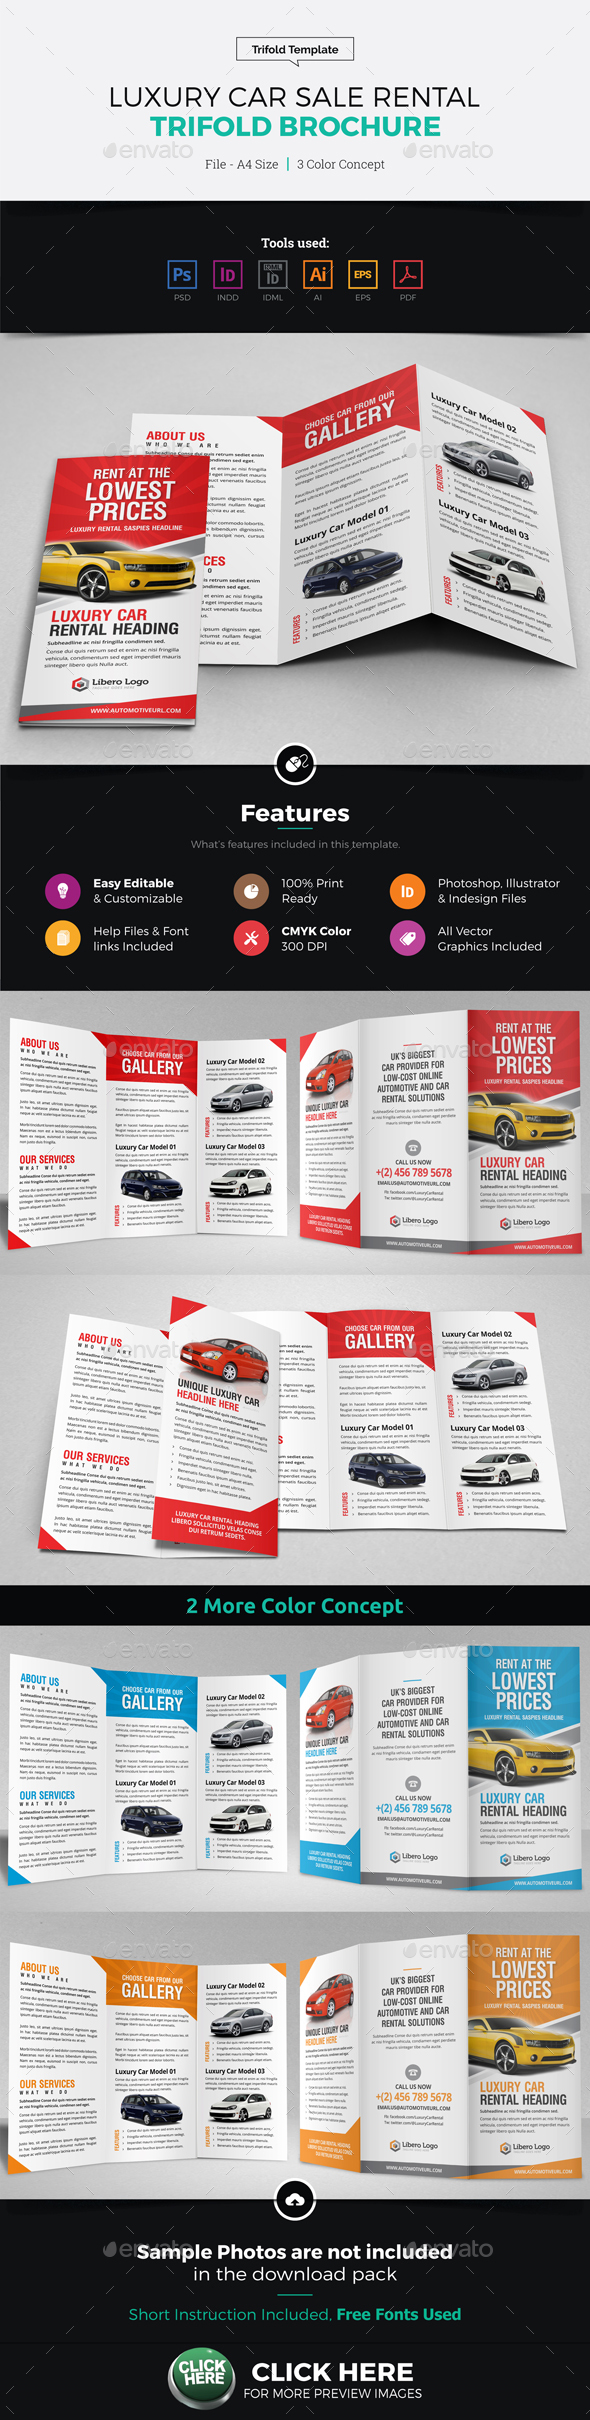 Luxury Car Sale Rental Trifold Brochure - Corporate Brochures